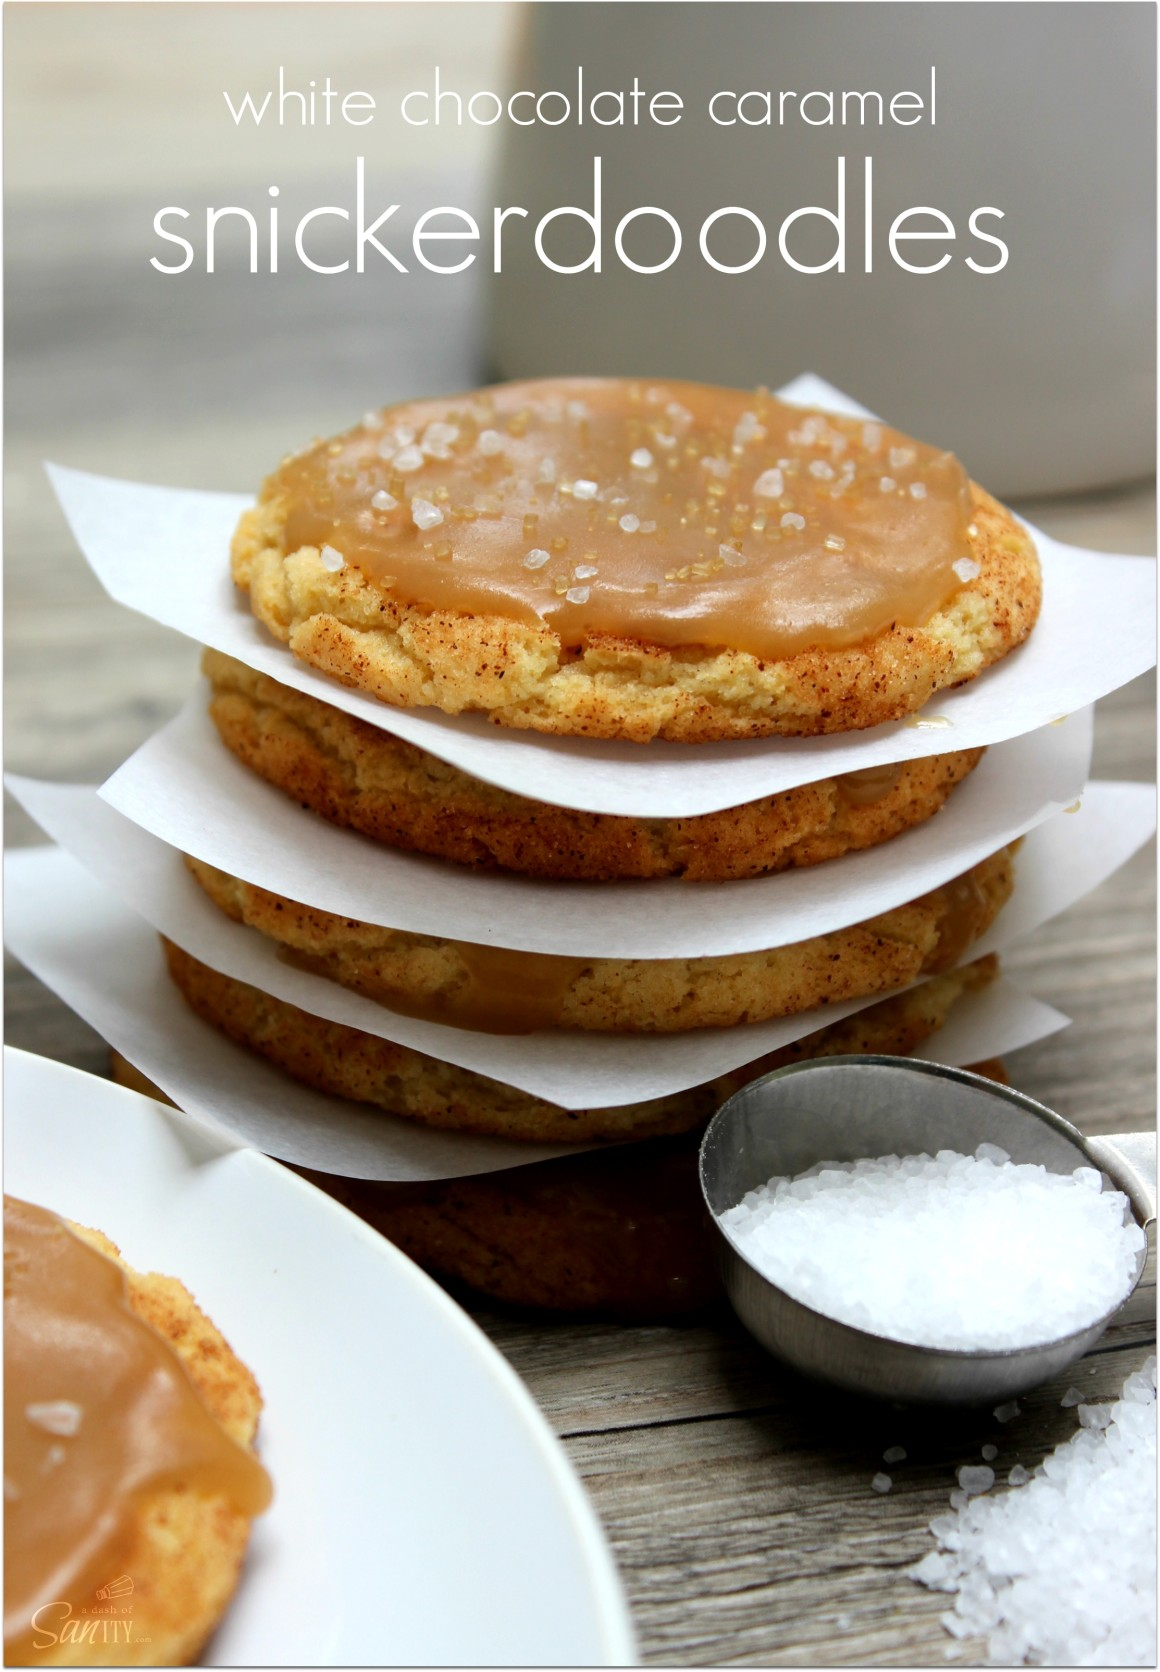 White Chocolate Caramel Snickerdoodles recipe from A Dash of Sanity